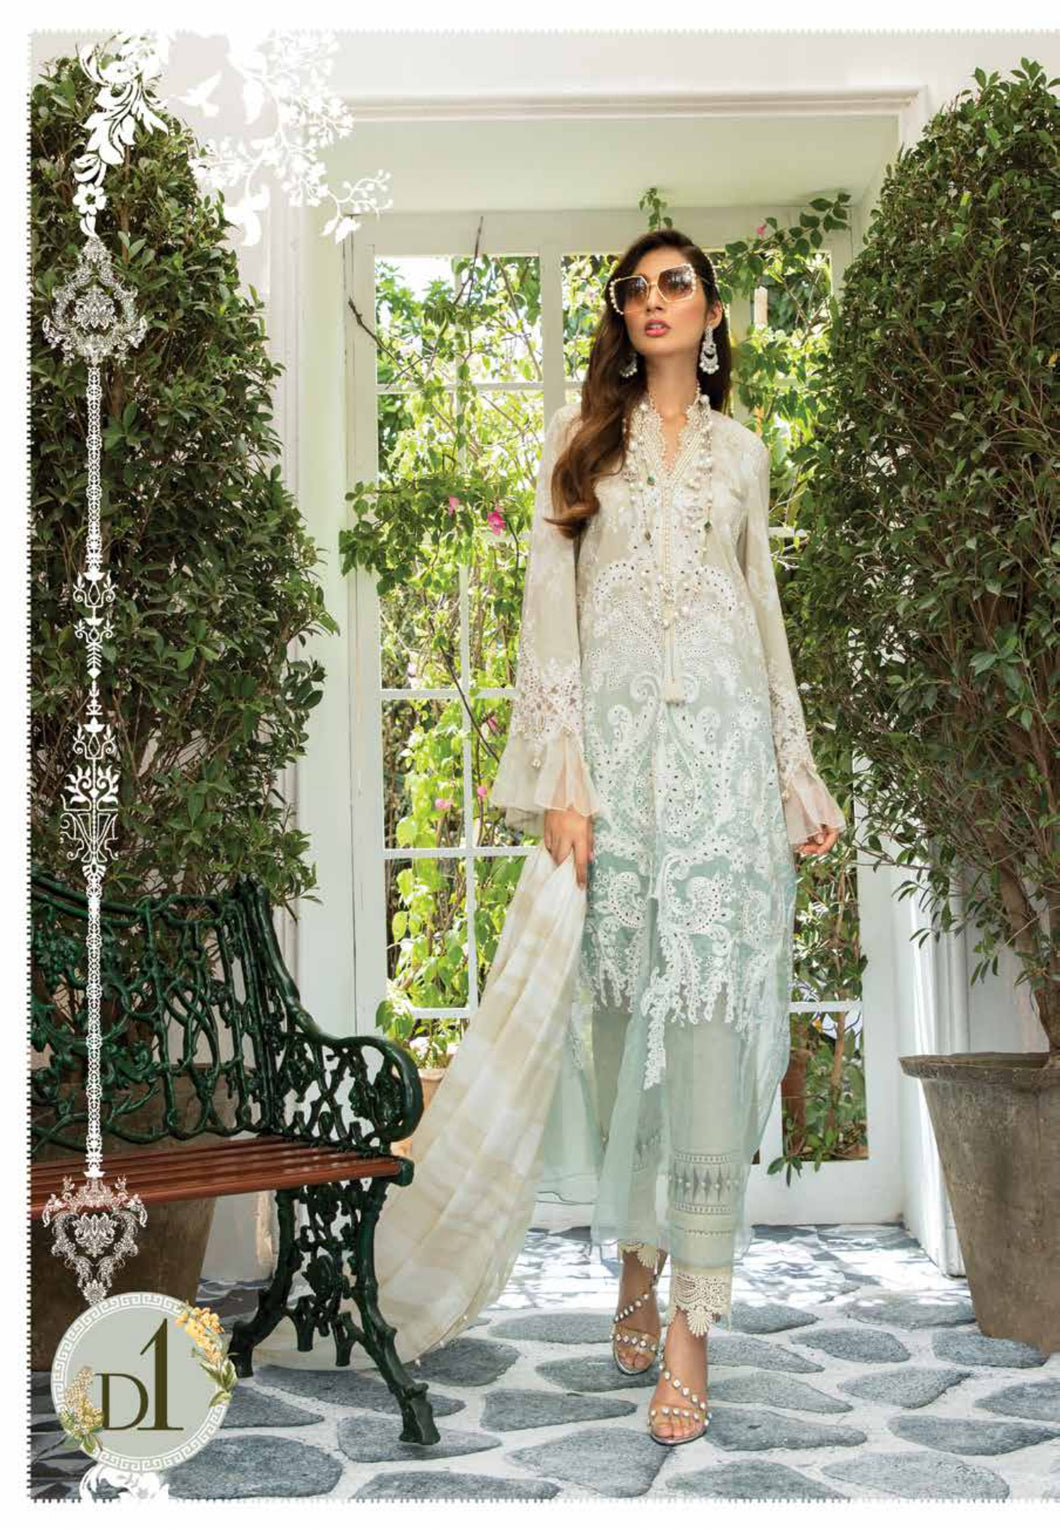 MARIA.B. Lawn Eid Collection 2020 - D1 maria b lawn eid collection 2020 maria b wedding maria b 2020 maria b maria b uk maria Bello maria b eid collection 2020 online Pakistani designer dress Anarkali Suits Party Werar Indian Dresses Pakistani Dresses Eid dresses online shoppingReady made Pakistani clothes UK Eid dresses UK online Eid dresses online shopping readymade eid suits uk eid suits 2019 uk pakistani eid suits uk eid suits 2020 uk Eid dresses 2020 UK maria b party wear maria b party wear 2020